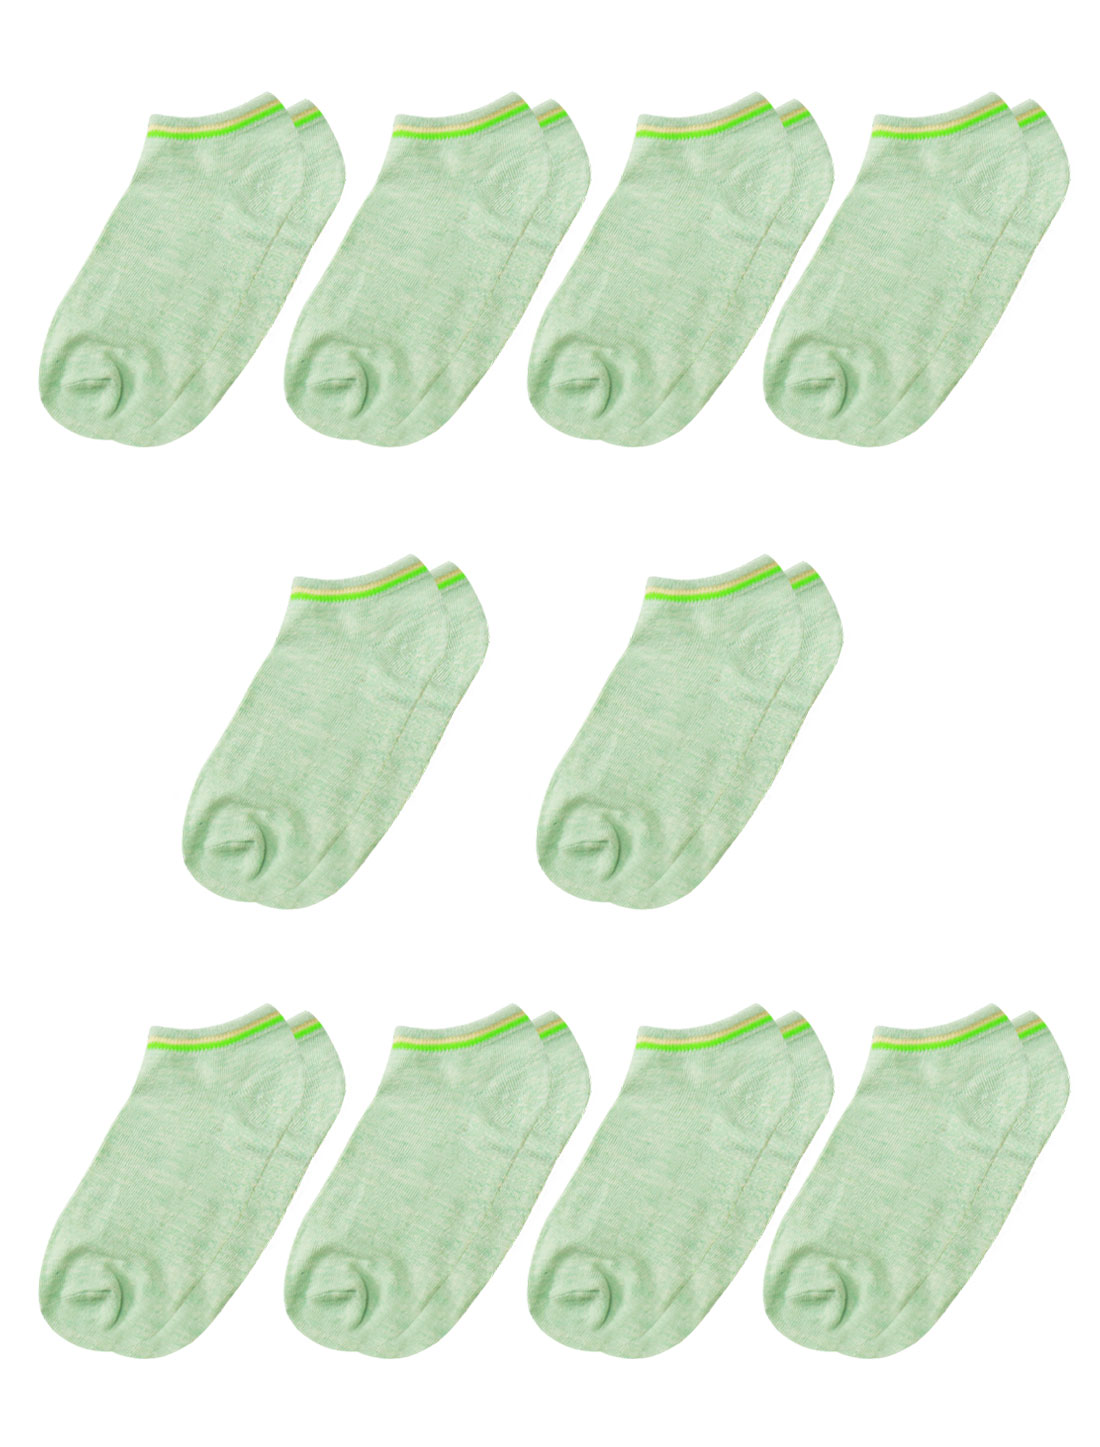 Women Low Cut Elastic Cuffs Ankle Length Short Socks 10 Pairs Green